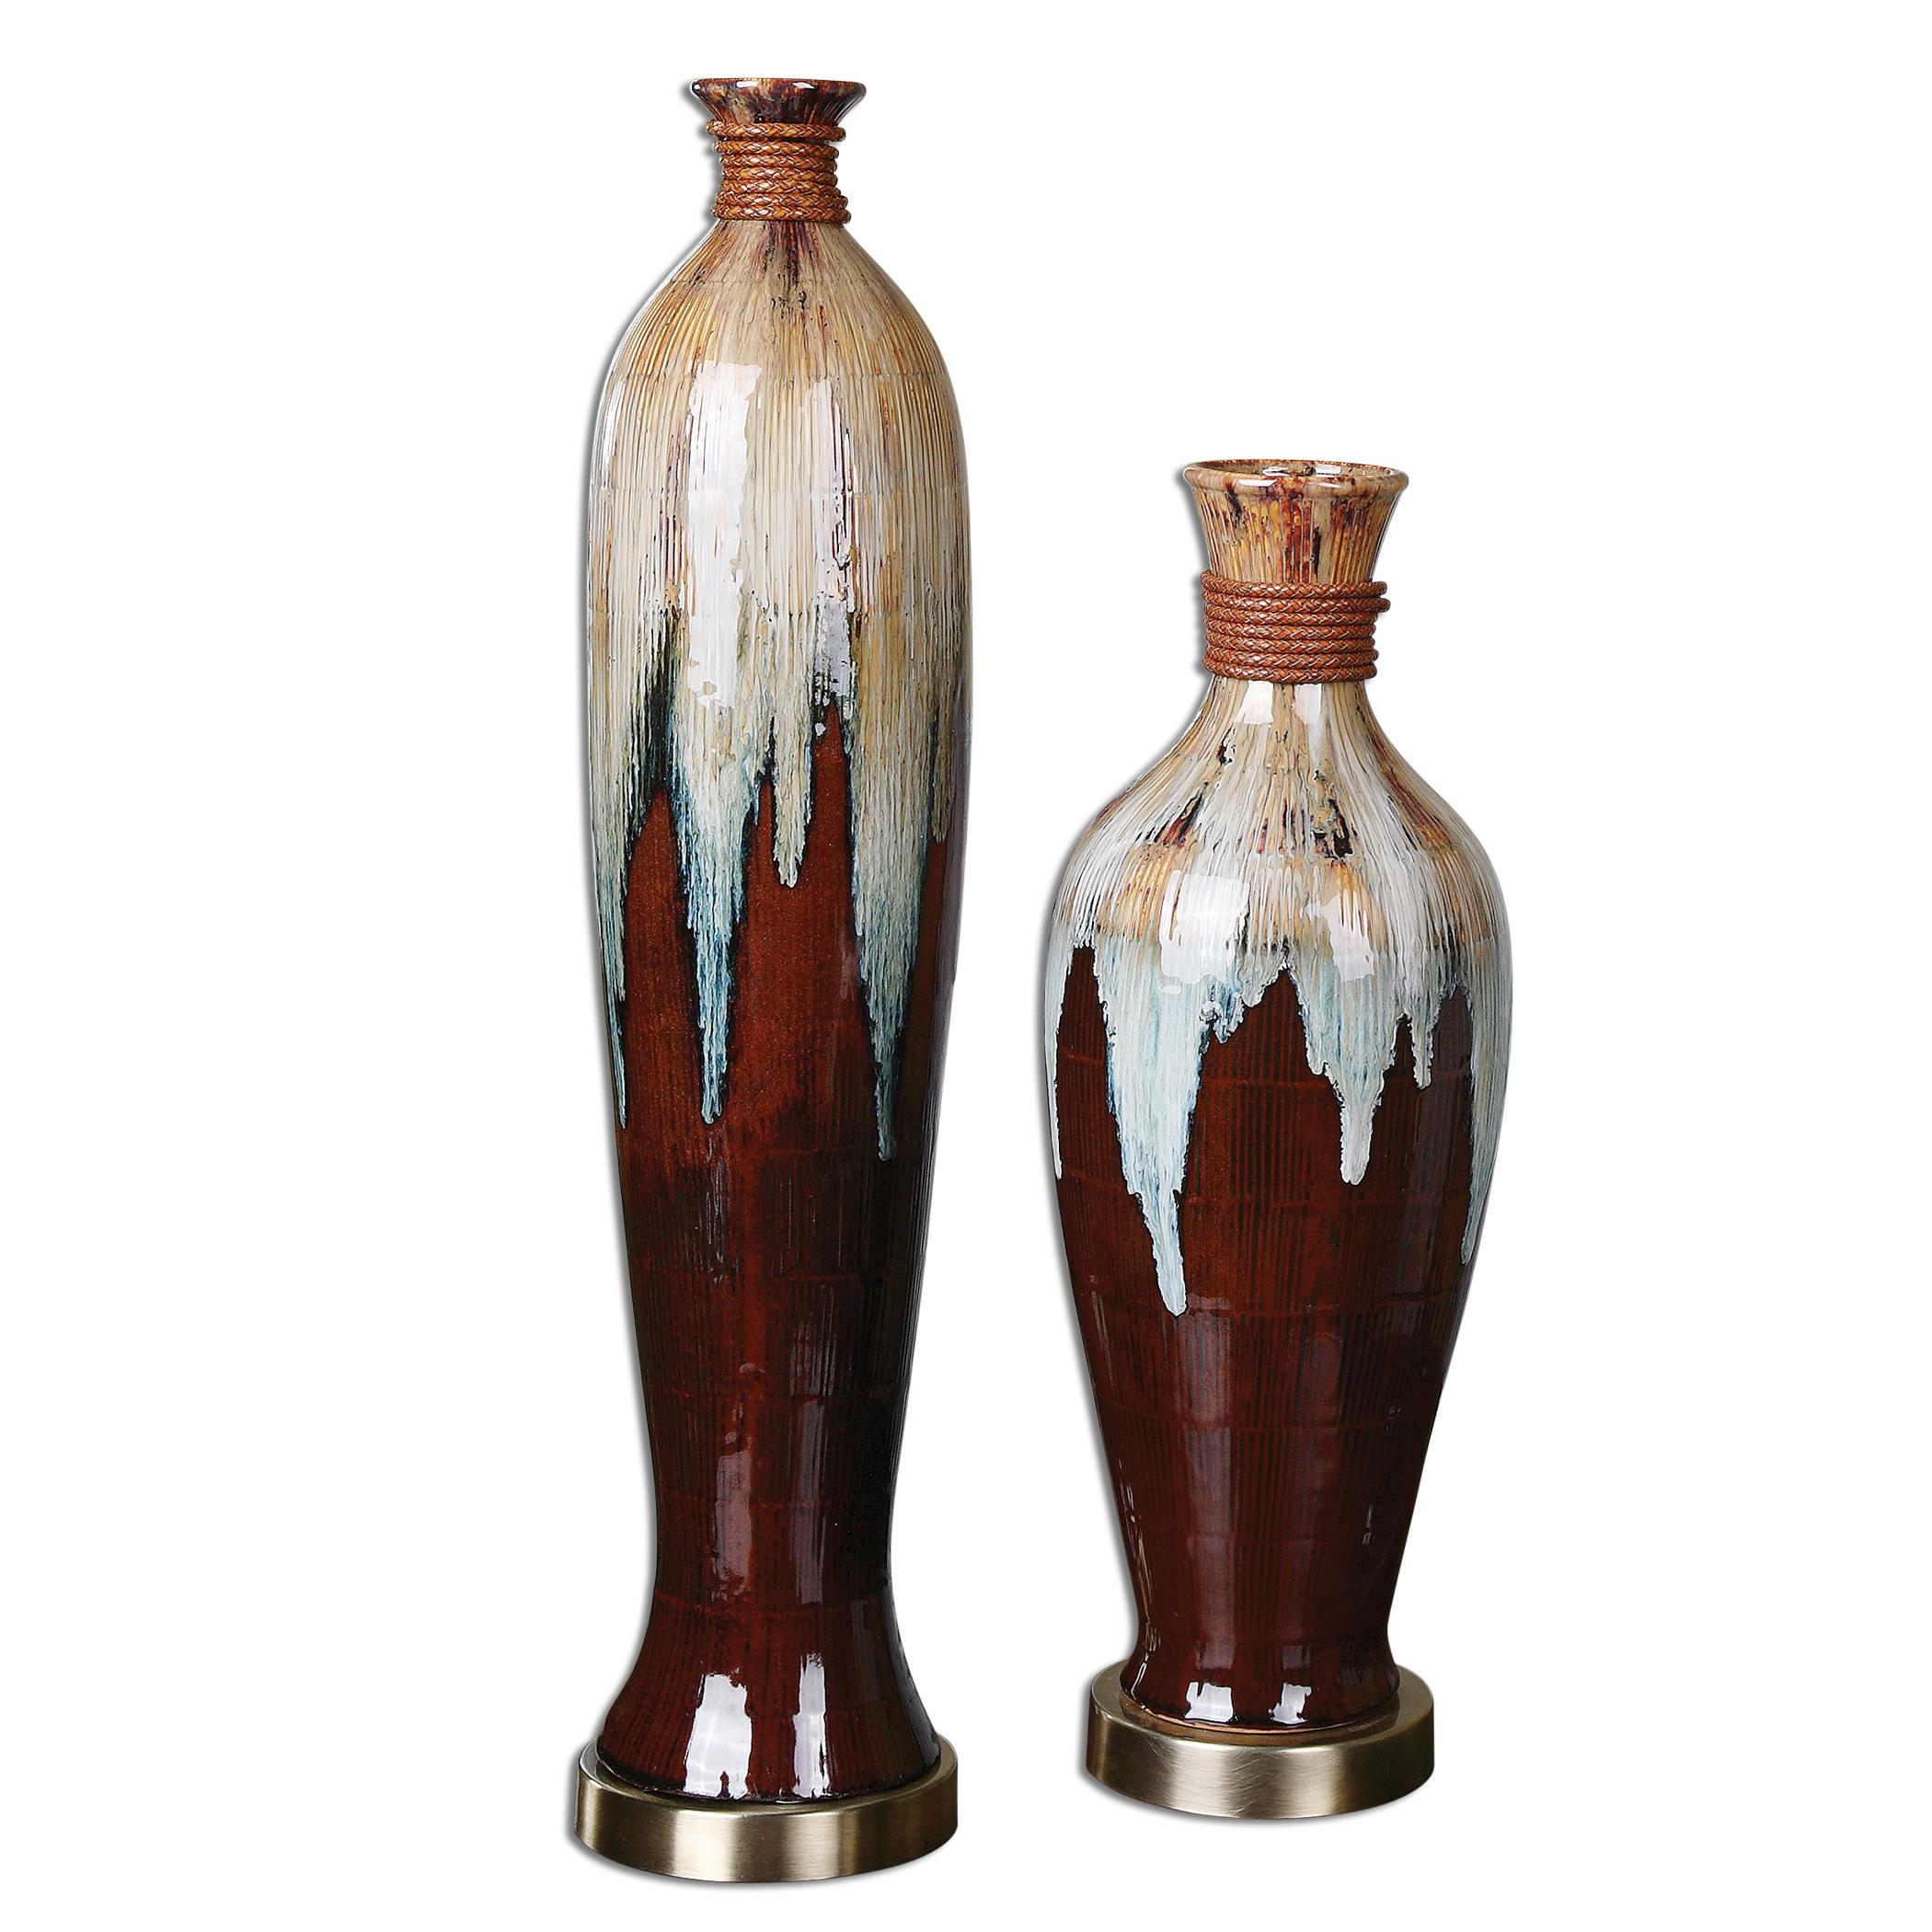 Uttermost Accessories Aegis Ceramic Vases, Set of  2 - Item Number: 19844